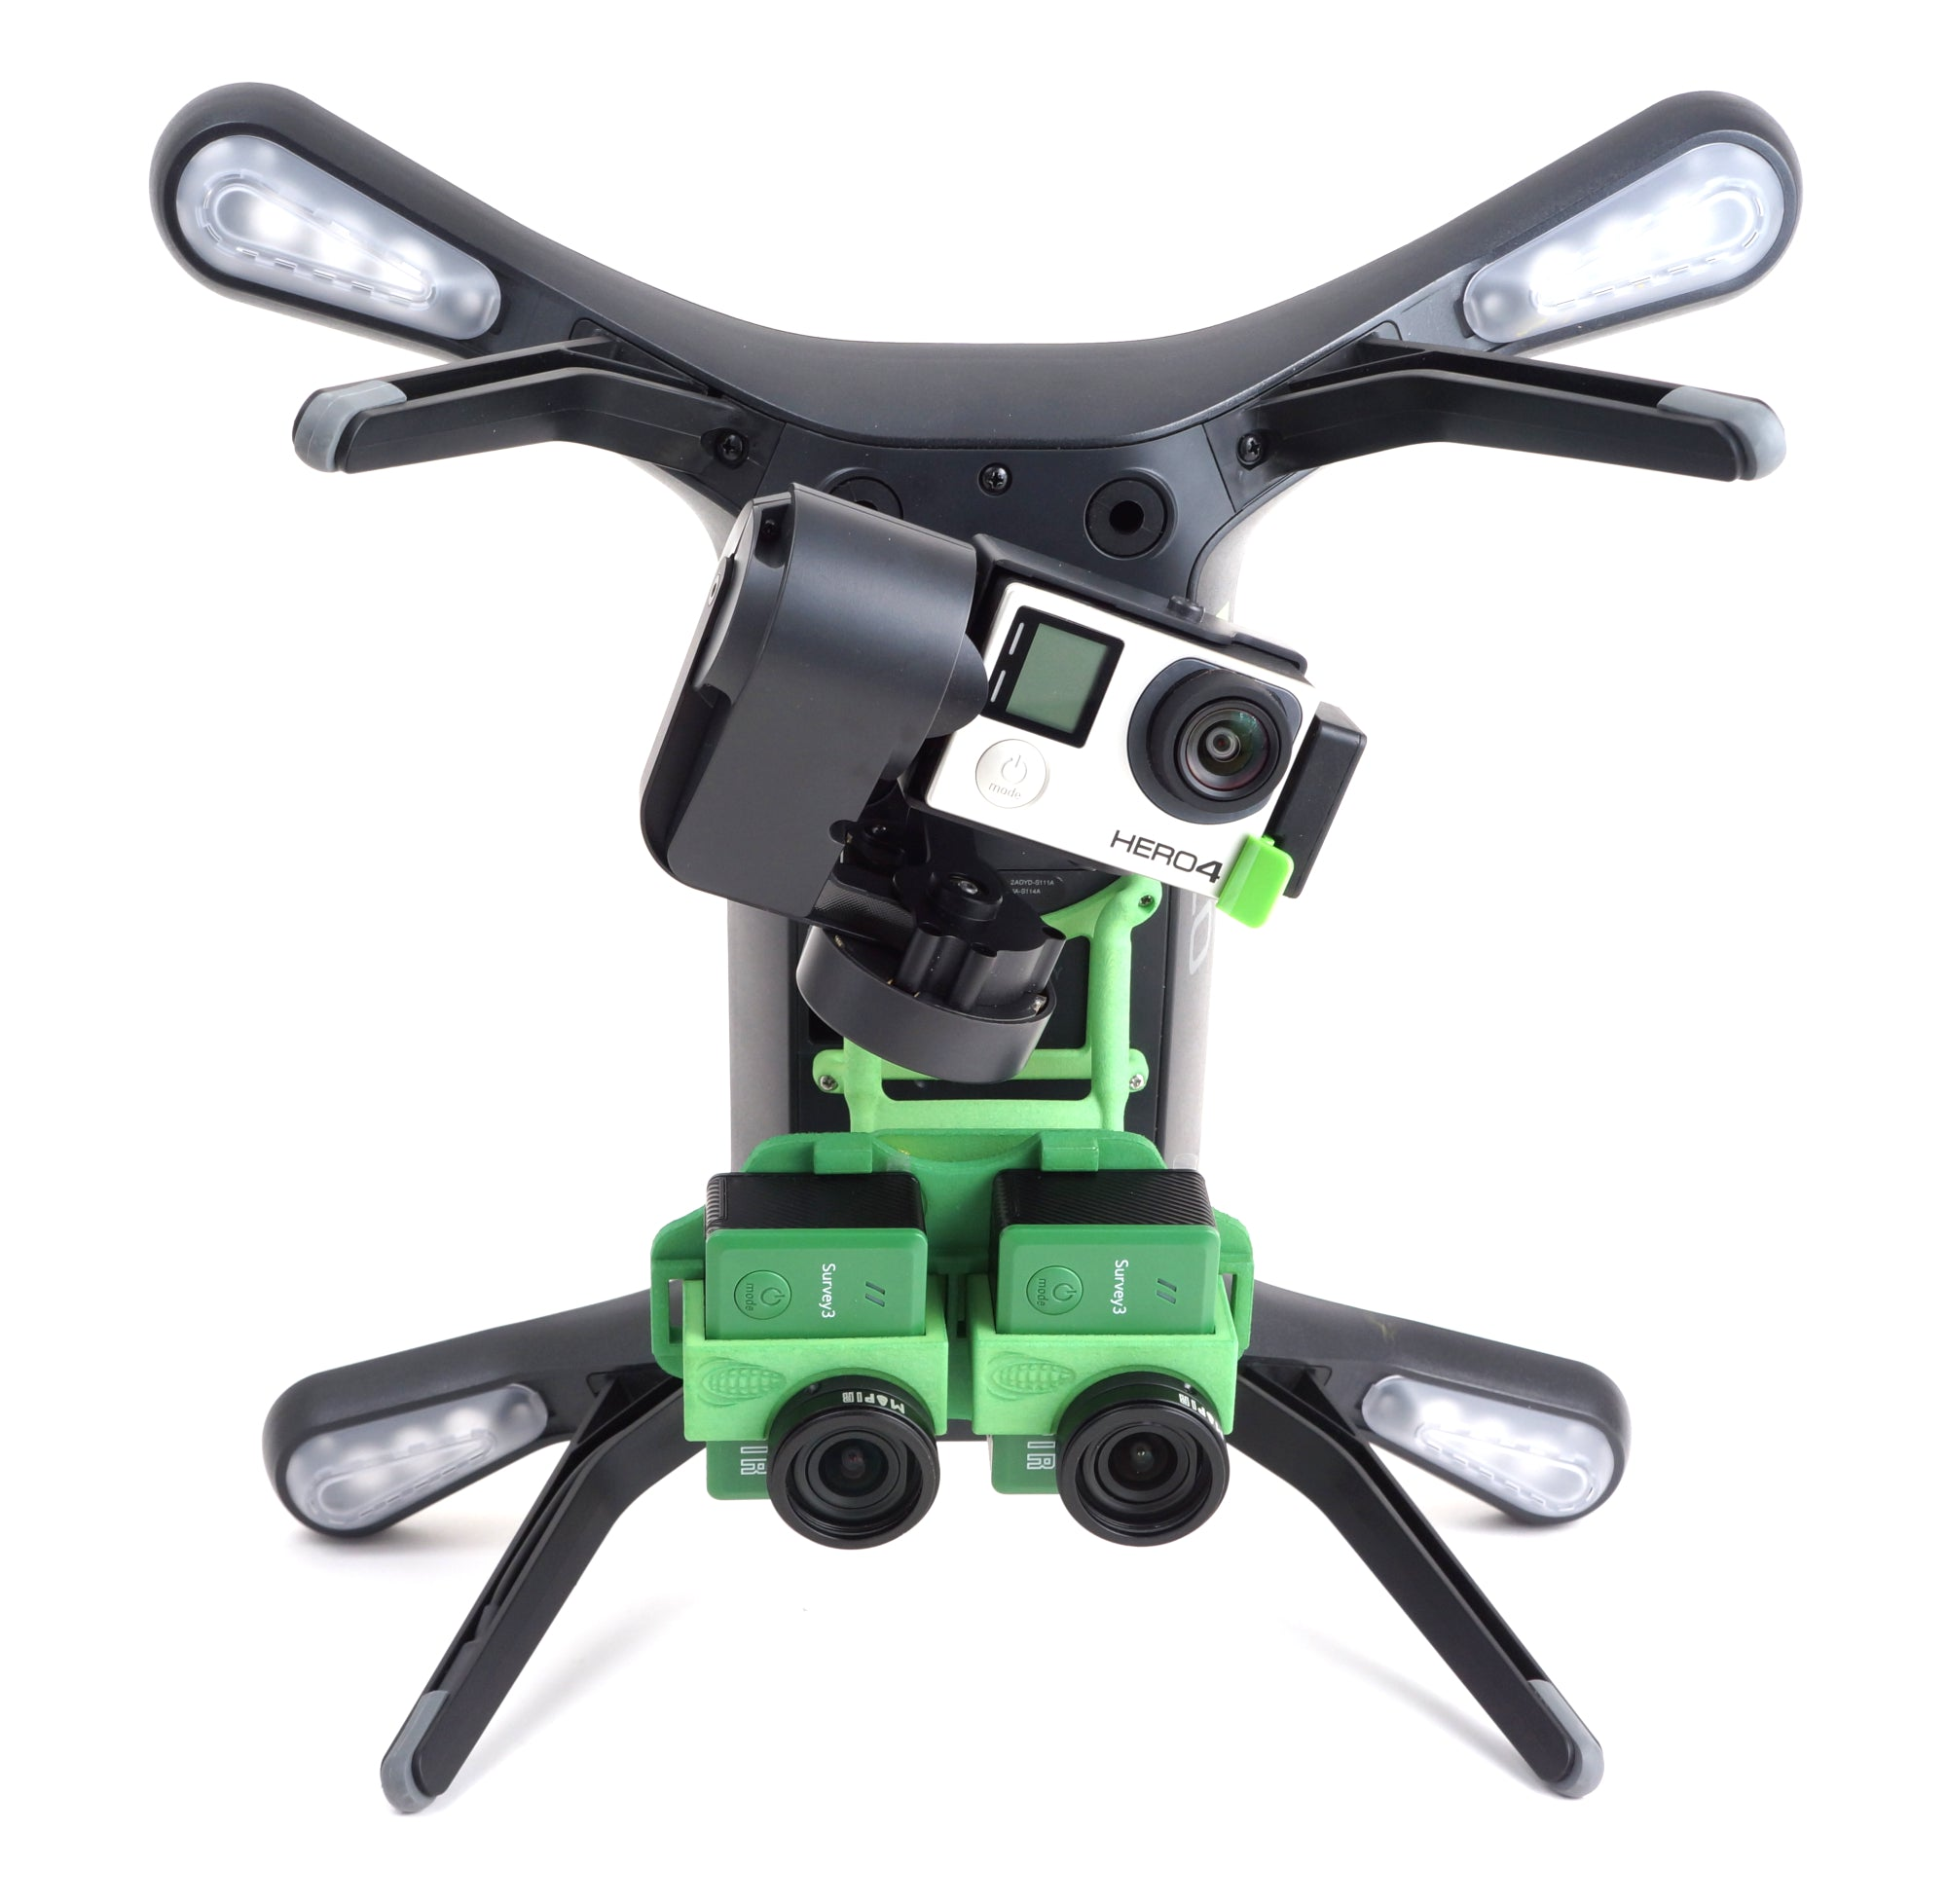 3DR SOLO Accessory Bay Tilting Mount - Dual Survey Cameras - 3DR Gimbal  Compatible